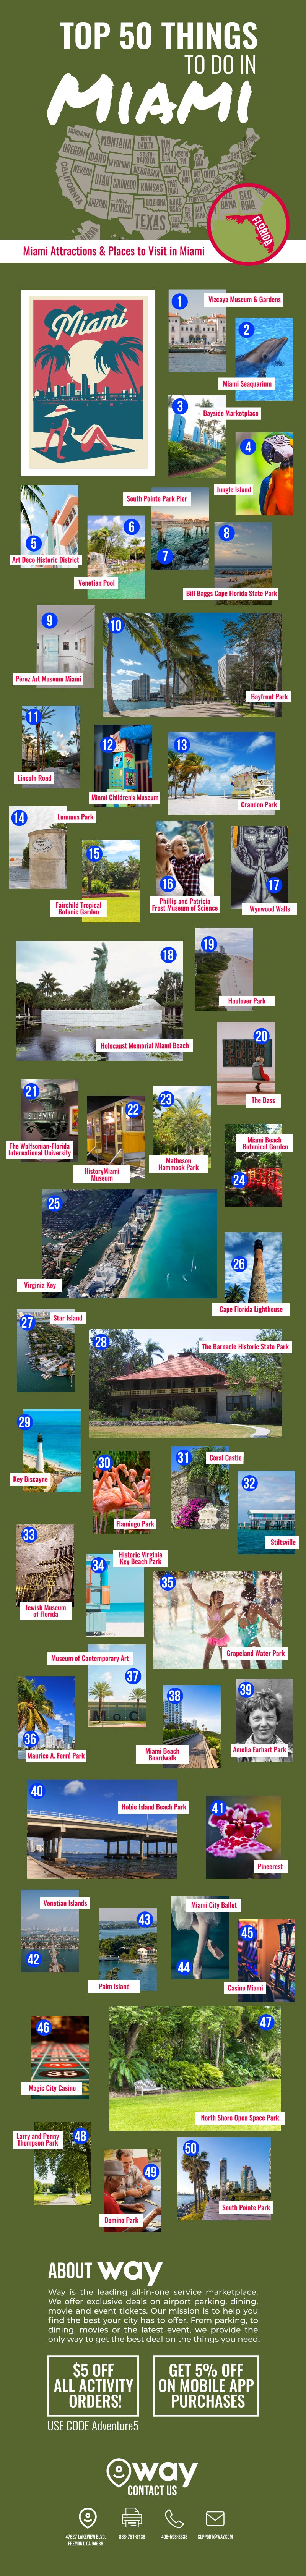 Top-50-Things- to-Do-in-Miami-infographic-plaza